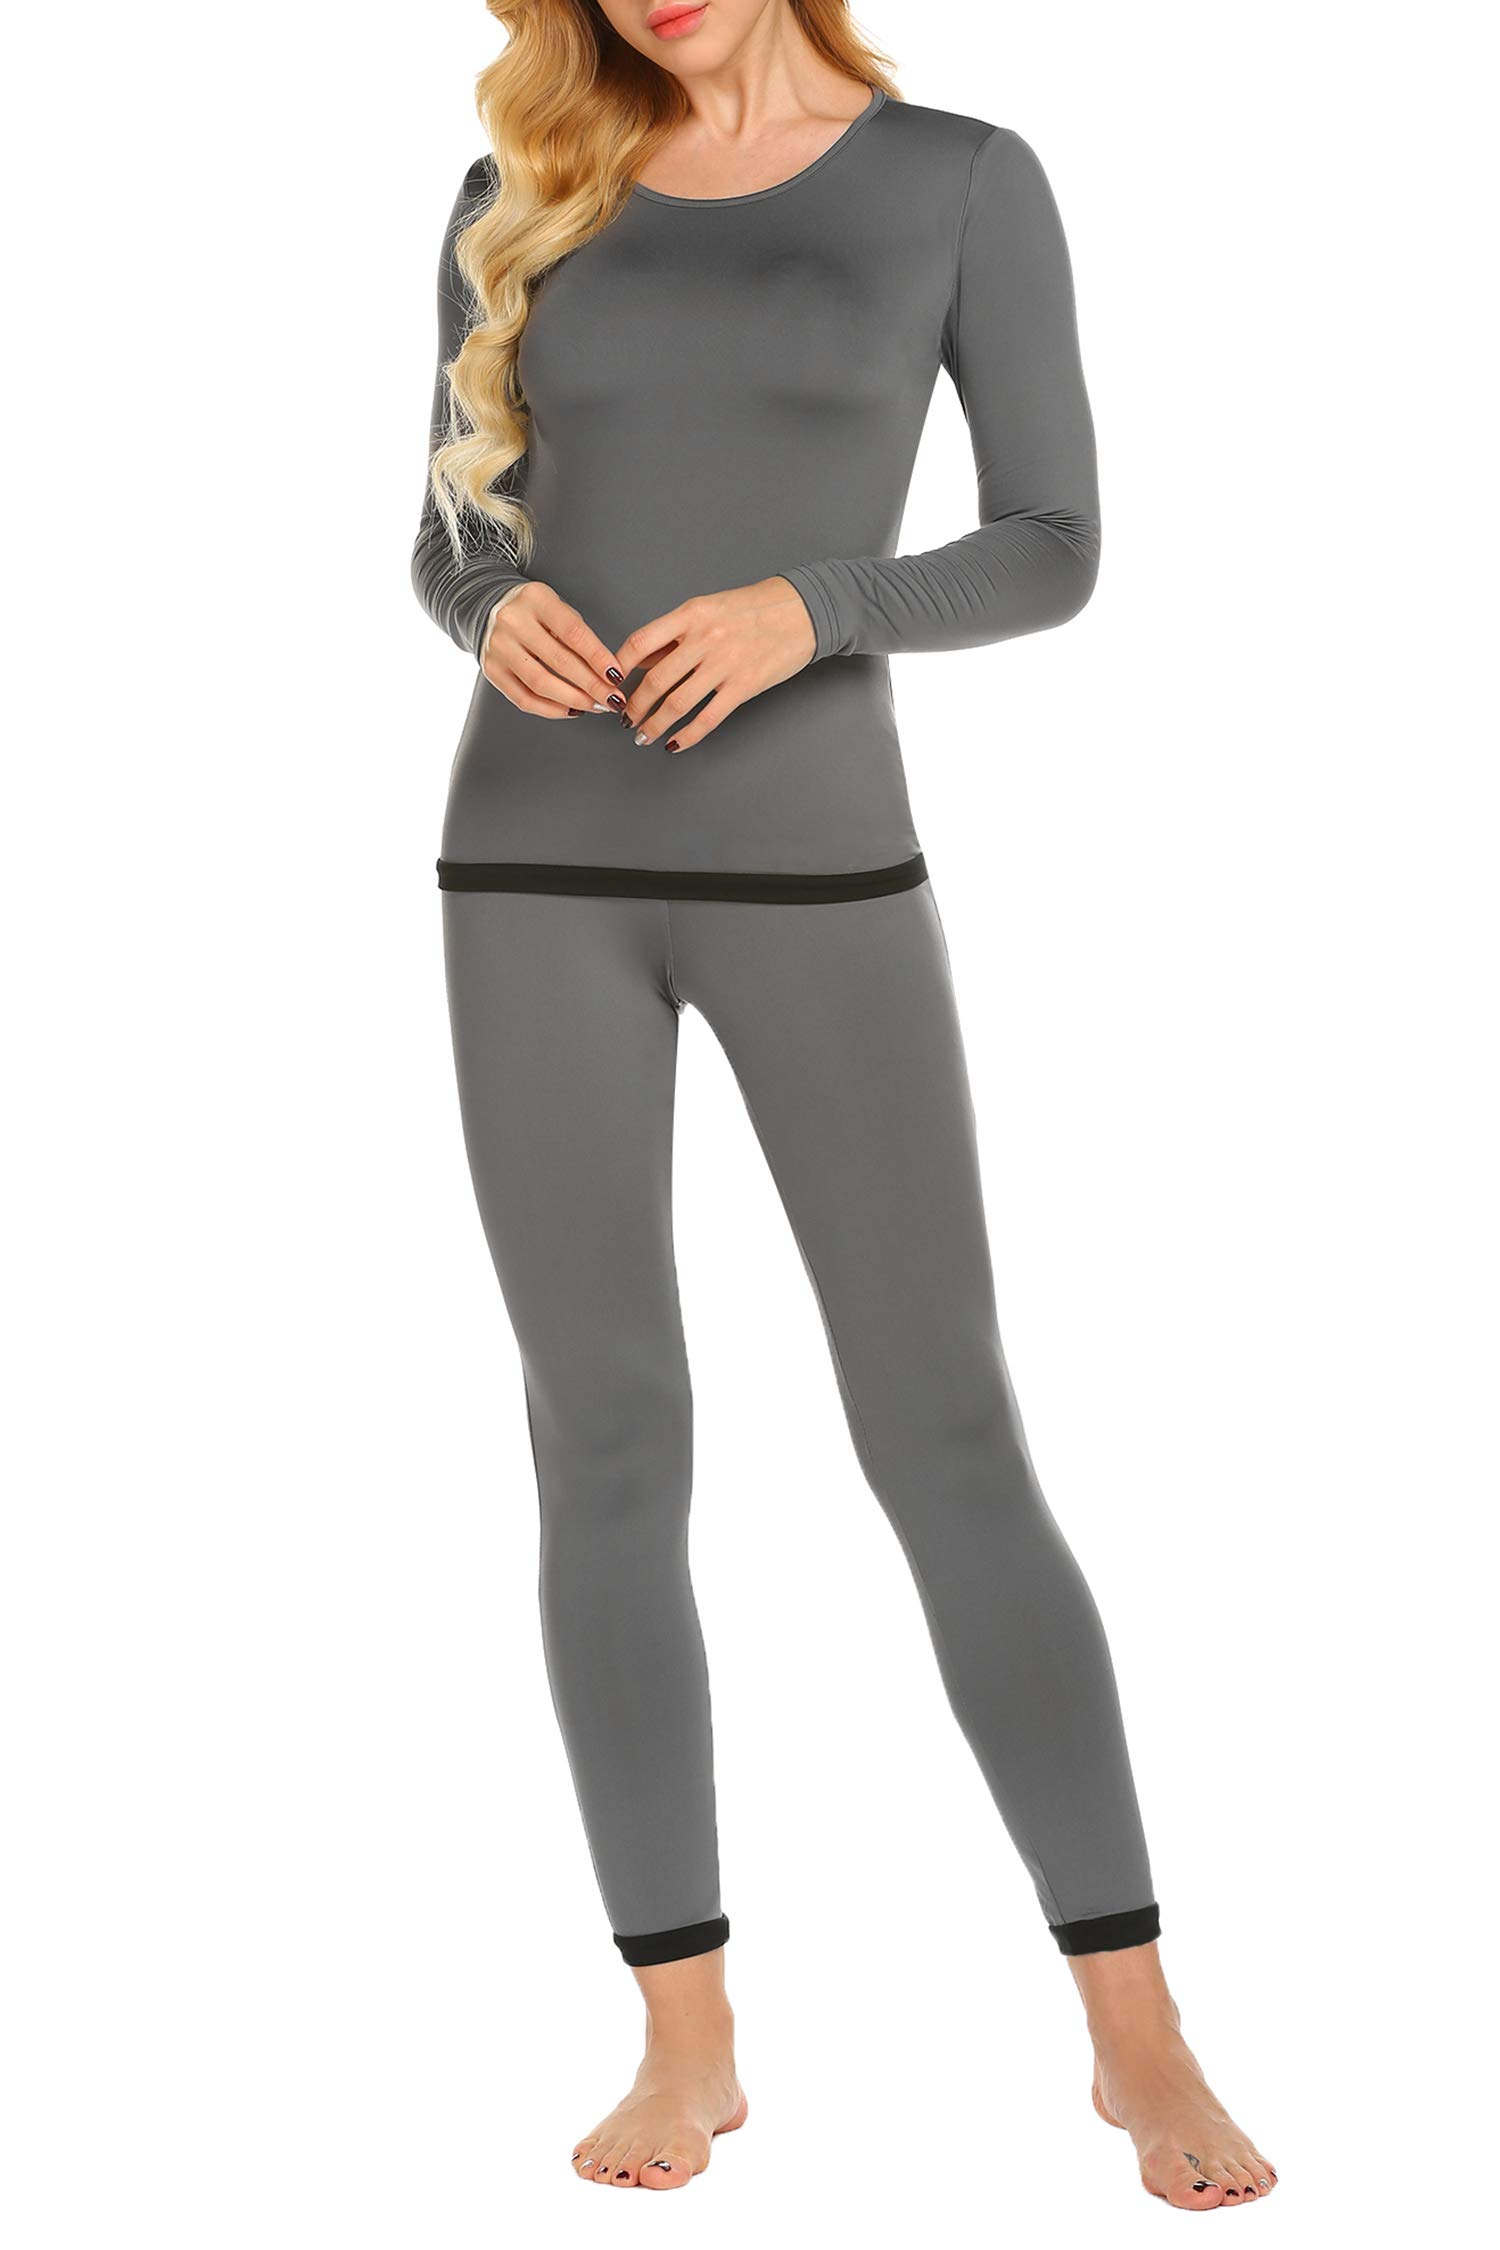 Ekouaer Womens Thermal 2 Pc Long John Underwear Set Top and Bottom Ultra Soft Smooth Knit (Gray M)